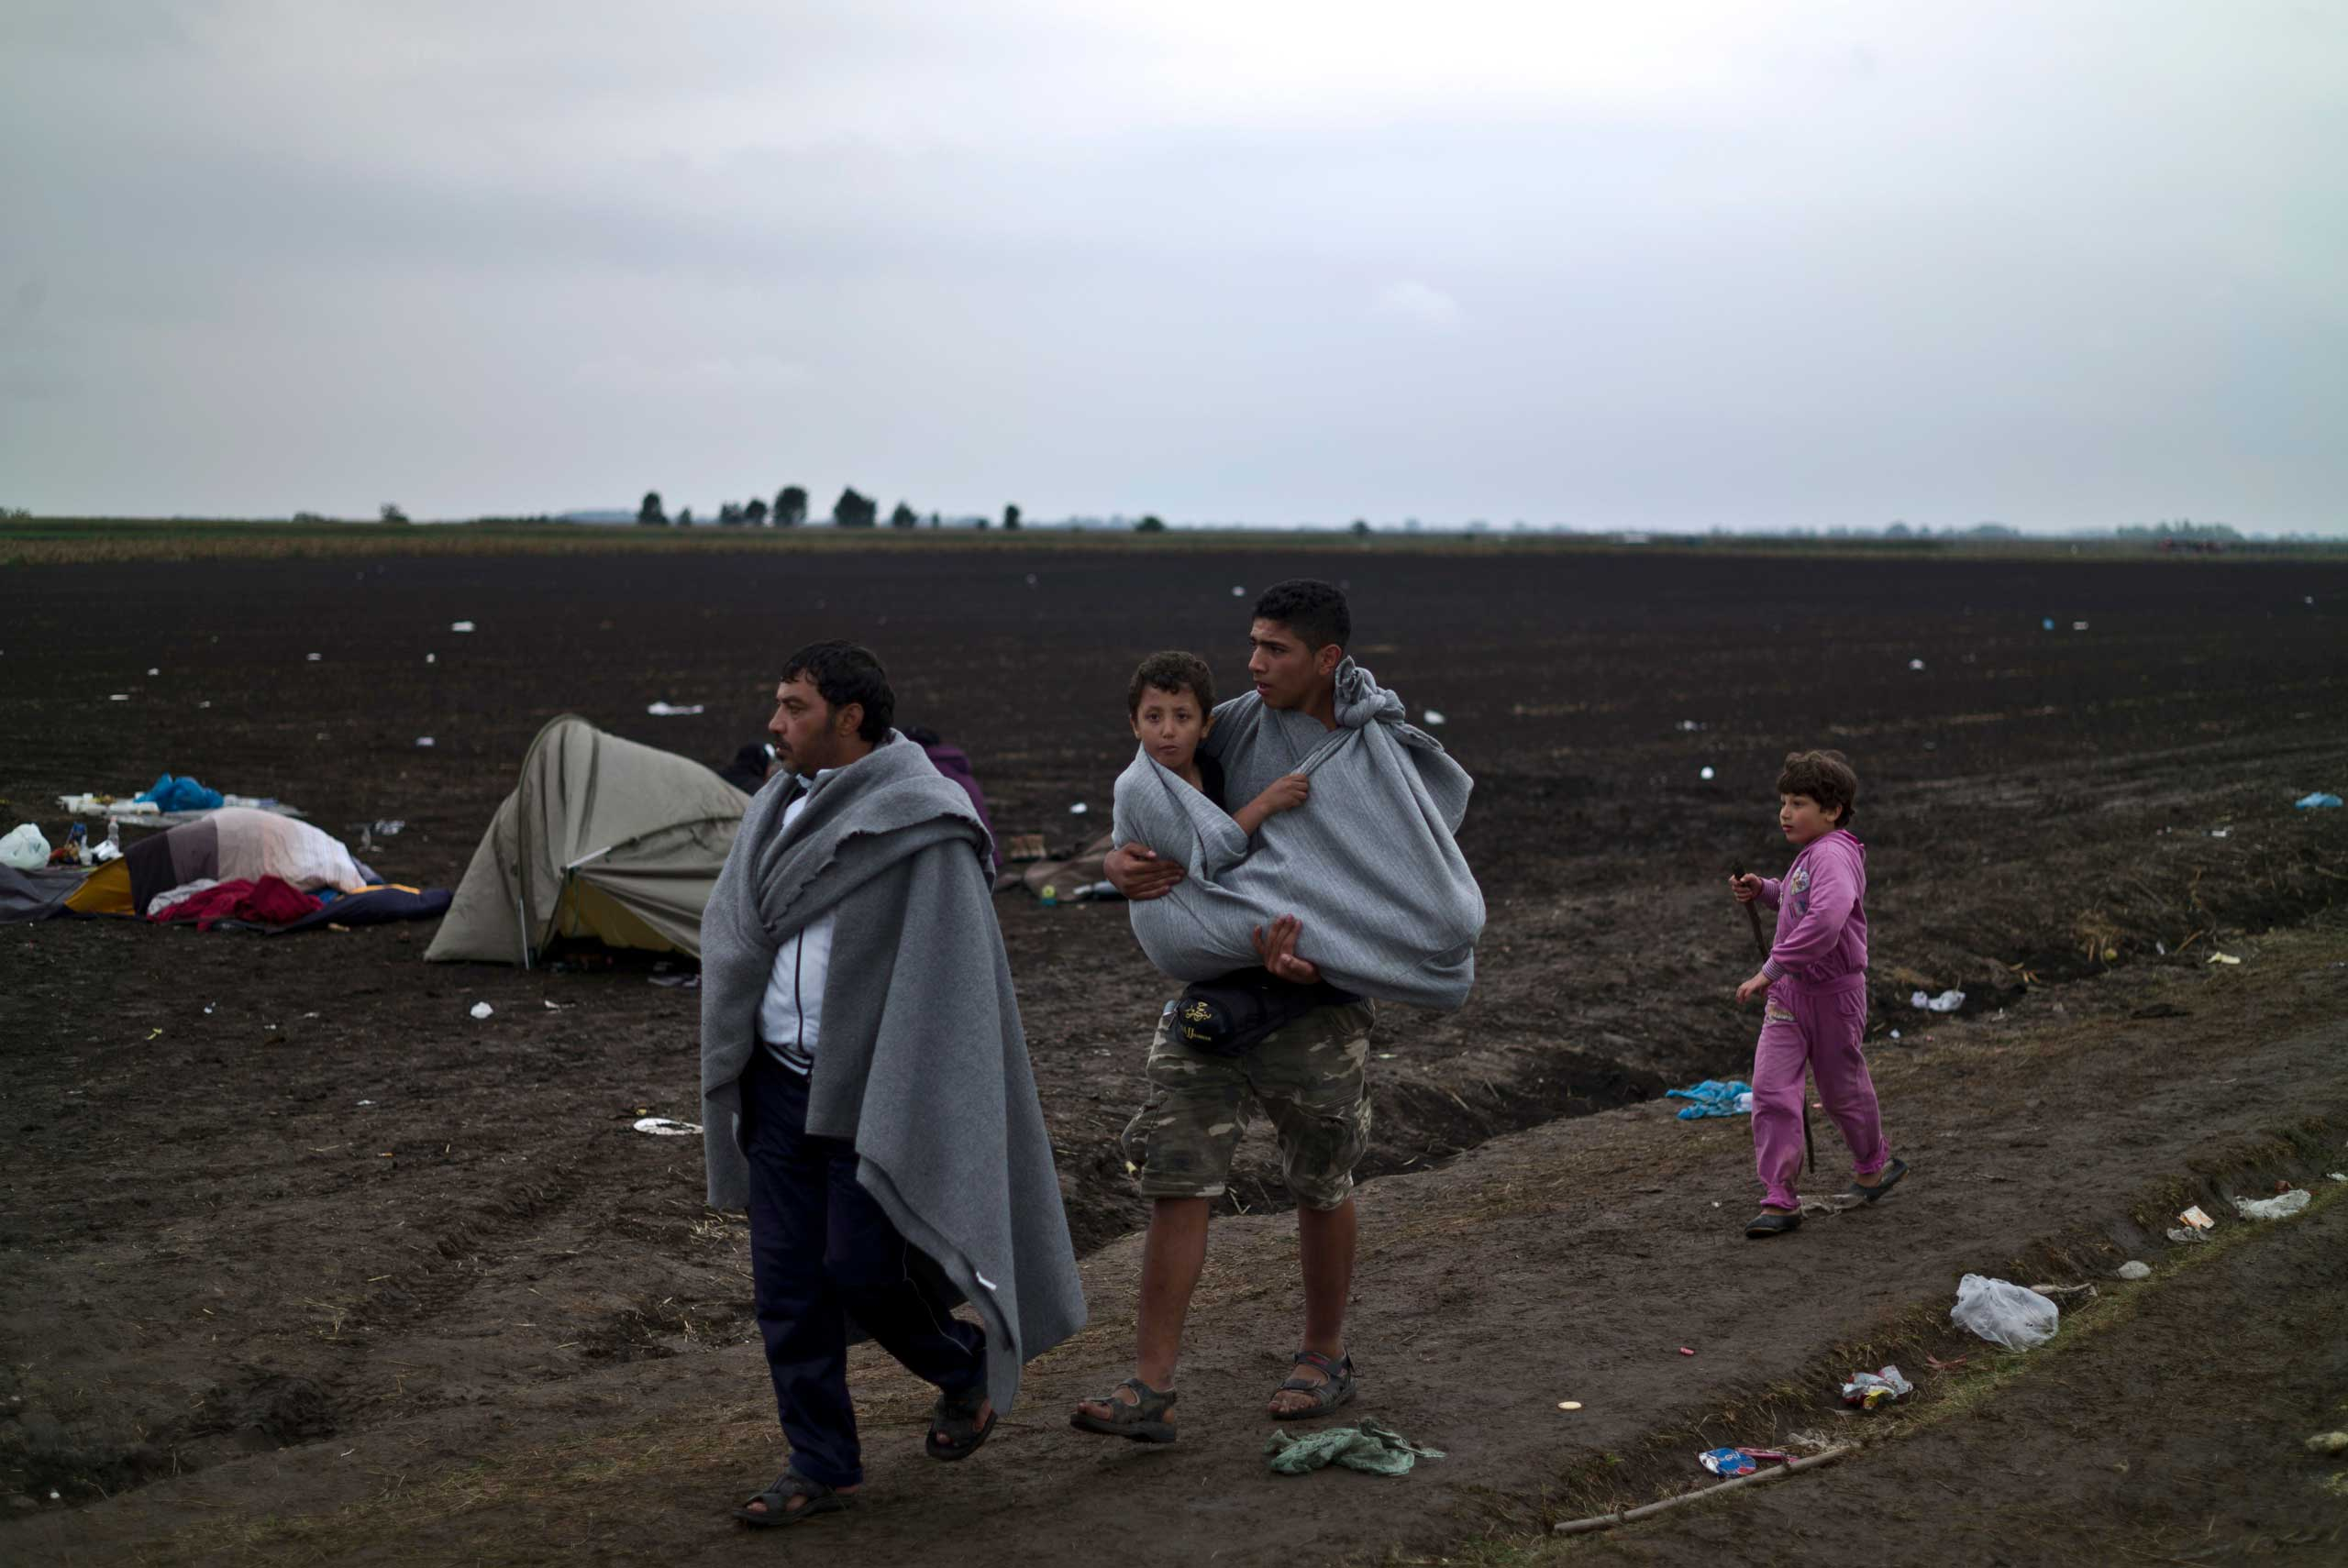 Syrian refugee Hussein Sbaih, 18, center, carries his cousin Saifuallah, 7, whose legs are broken, after they crossed the Serbian-Hungarian border near Roszke, on Sept. 11, 2015.